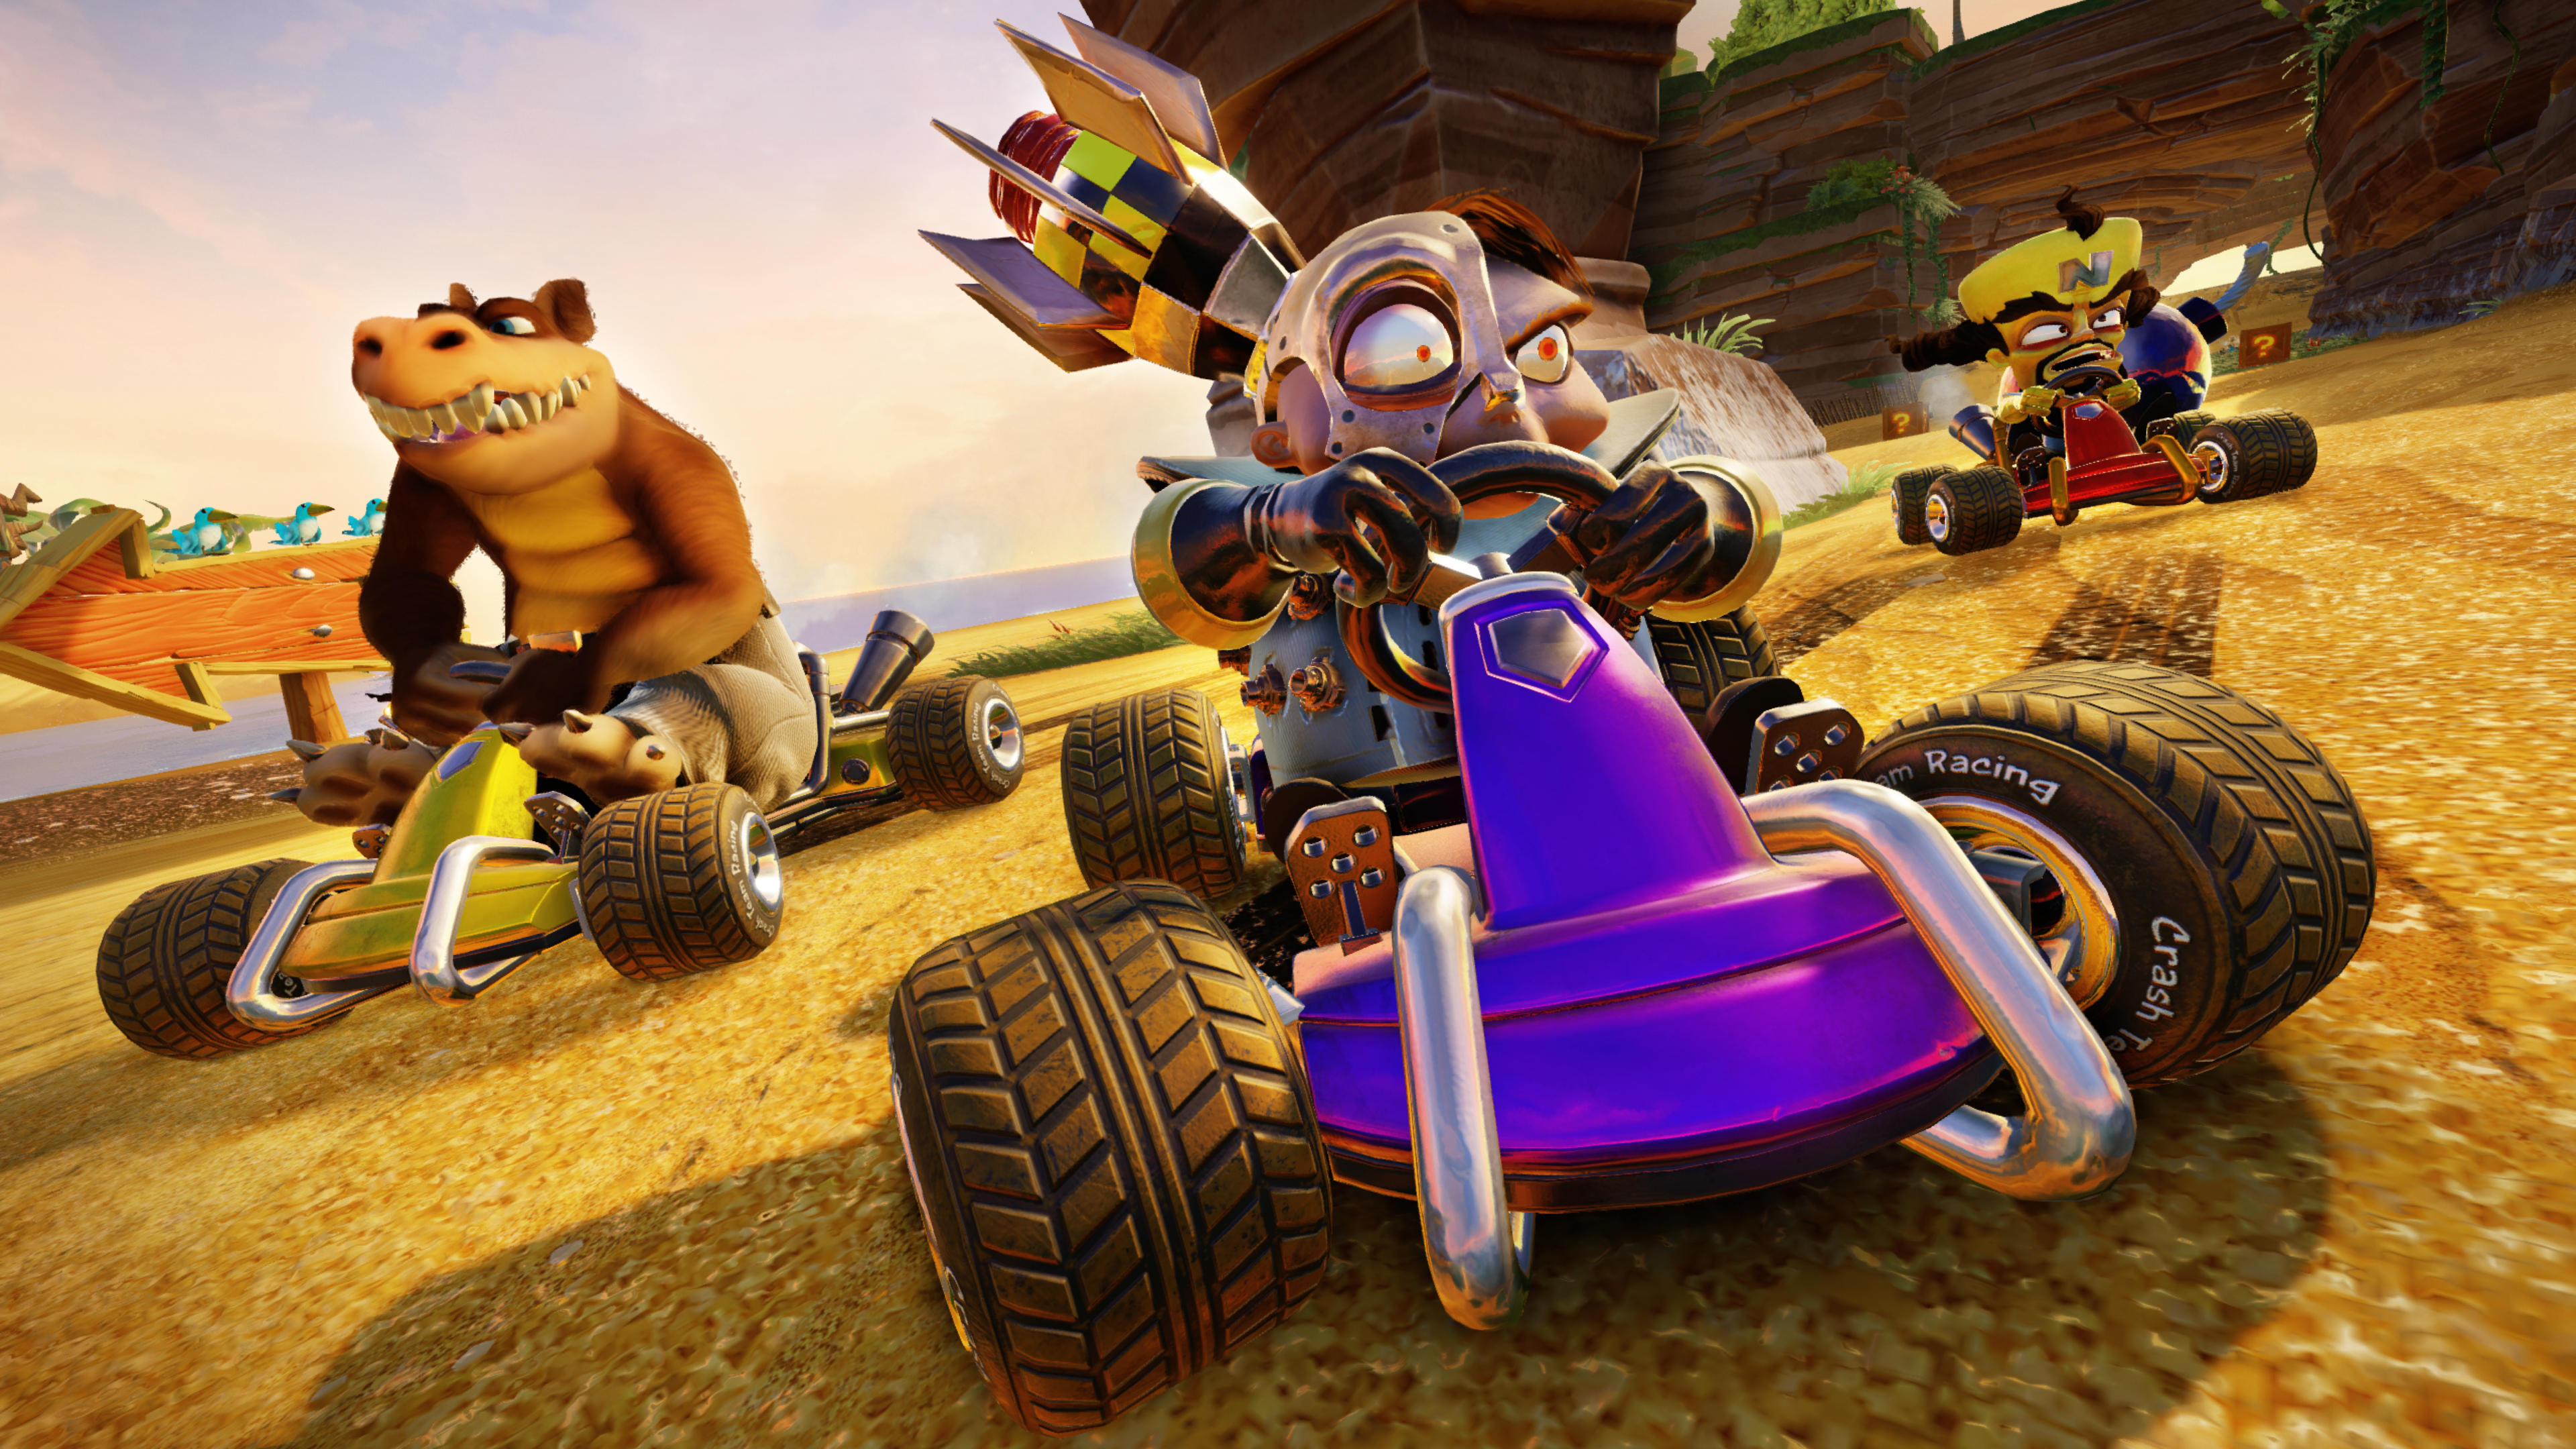 Best Crash Team Racing characters: Who are the top racers in Nitro